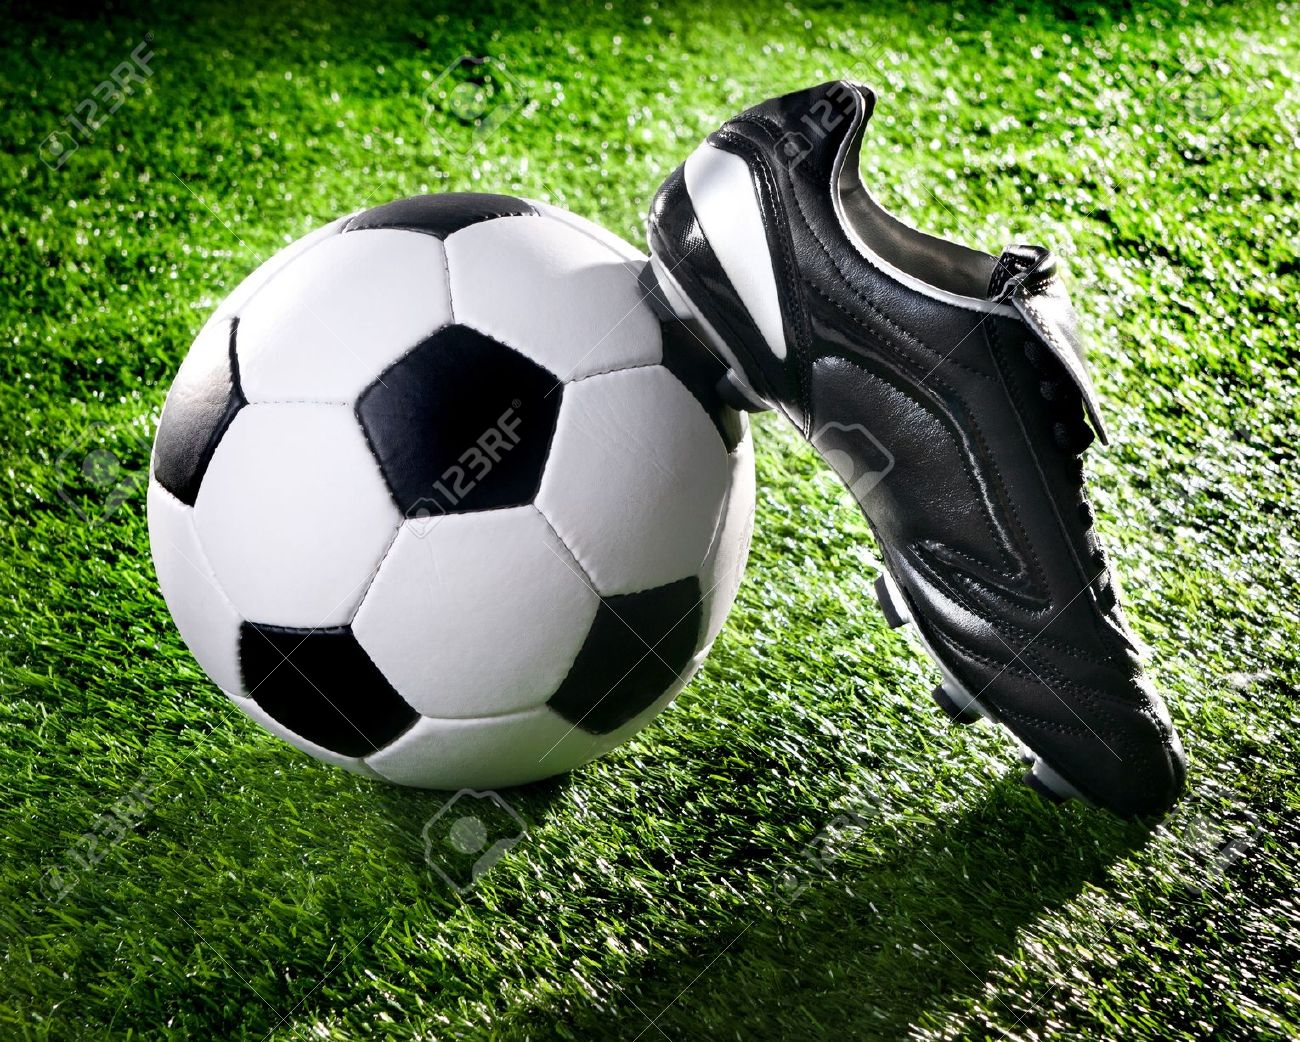 soccer-ball-boot.jpg